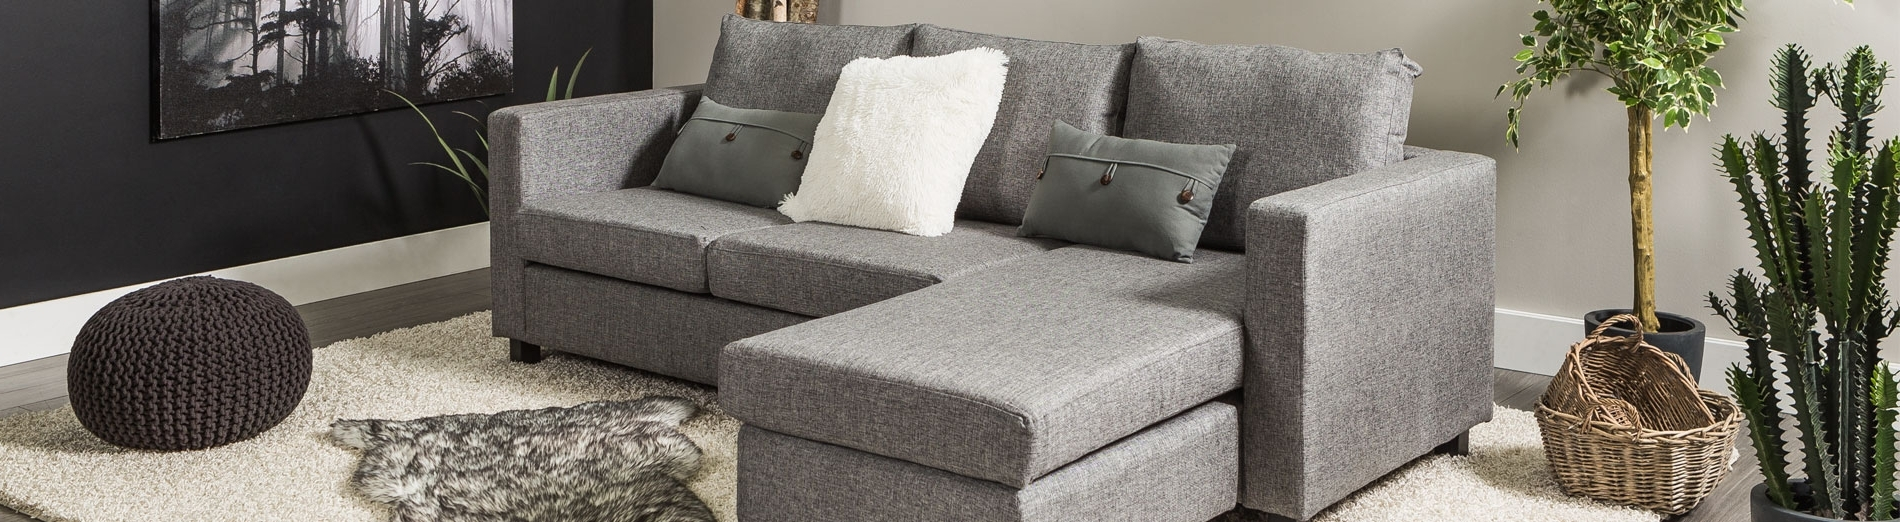 Well Liked Jysk Sectional Sofas Intended For Sofas & Sofabeds & Futons (View 5 of 15)